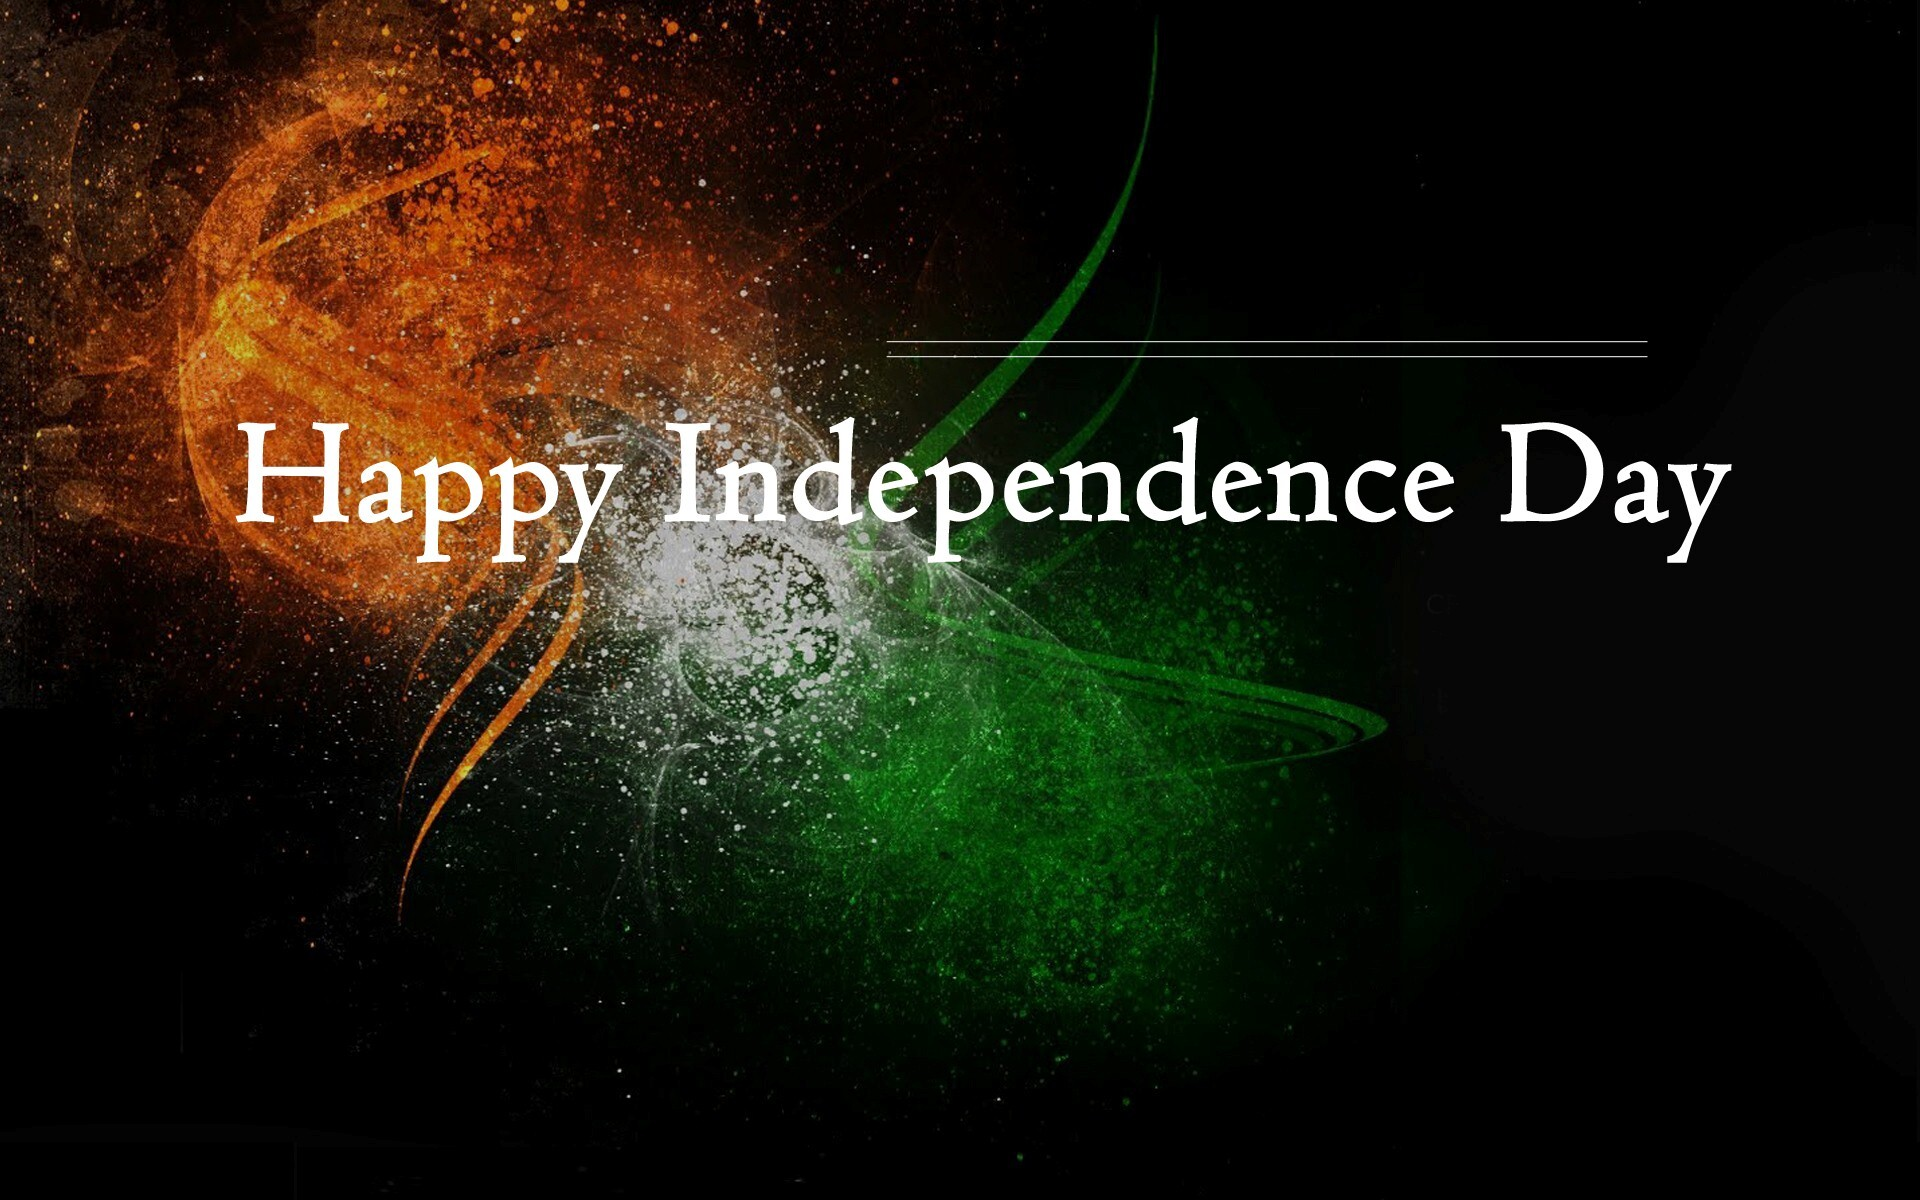 Happy Independence Day Desktop Image Background Hd Wallpapers